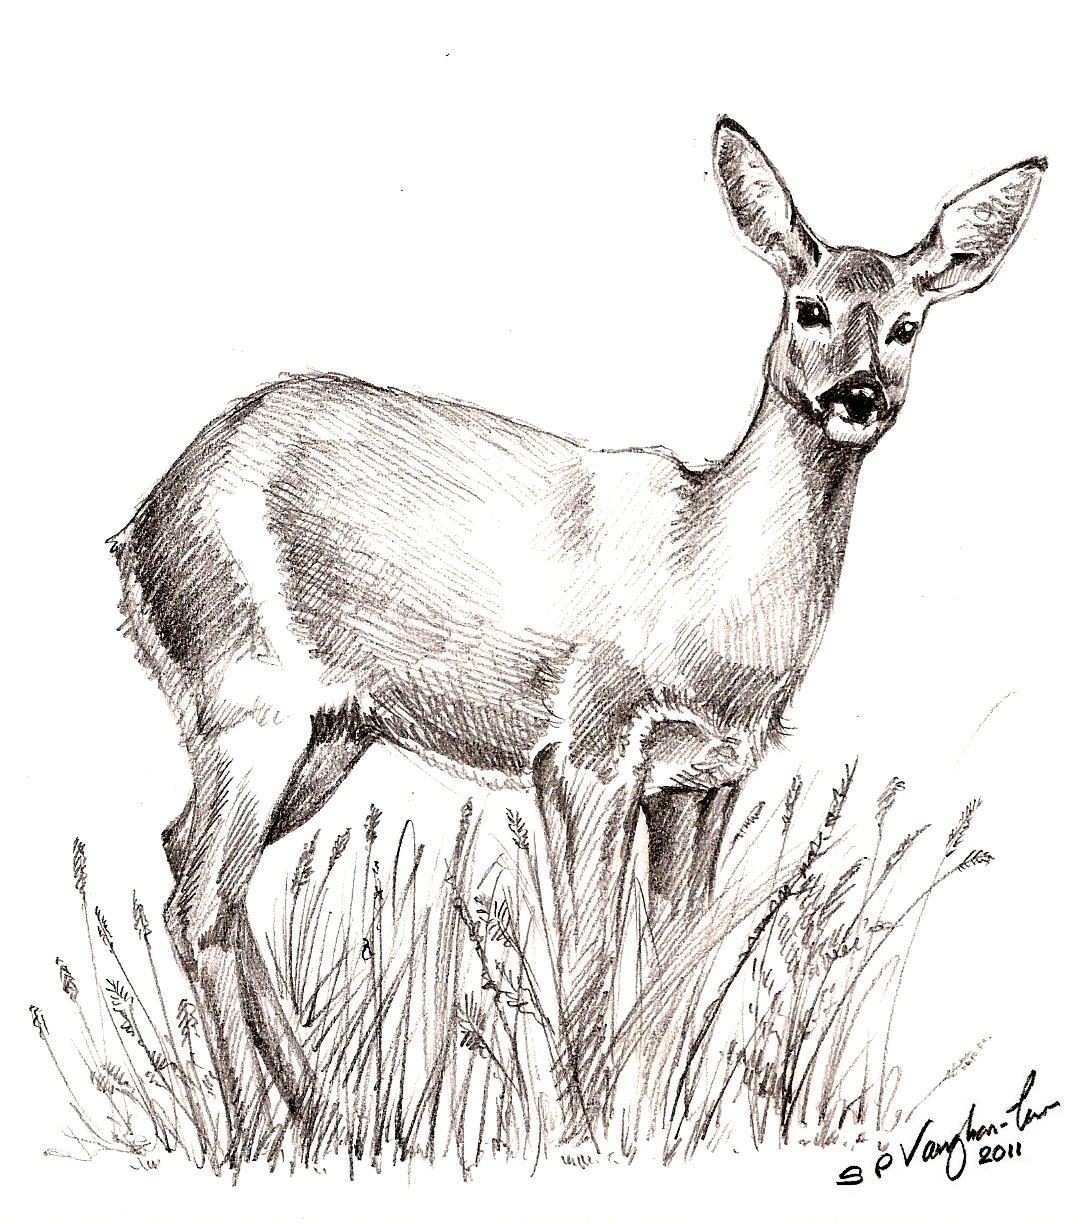 Image De Art Deer And Drawing: Drawing From Experience...: January 2011